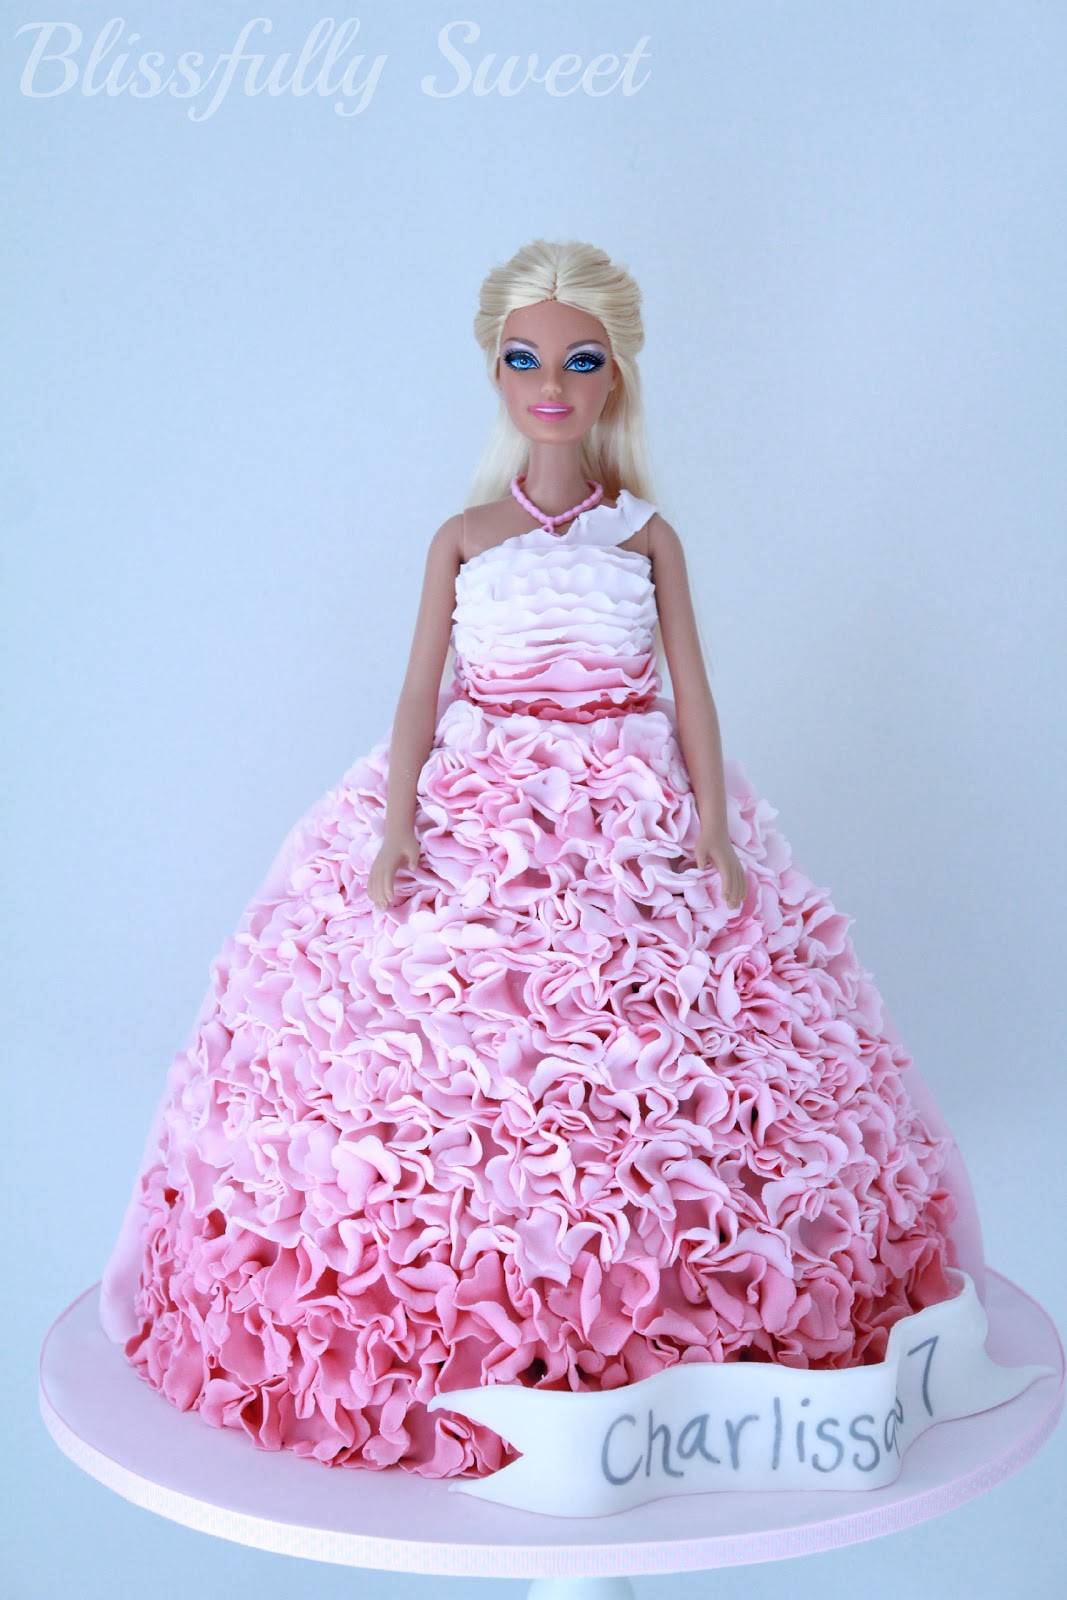 Images Of Barbie Birthday Cake : Blissfully Sweet: An Ombre Pink Ruffled Barbie Birthday Cake